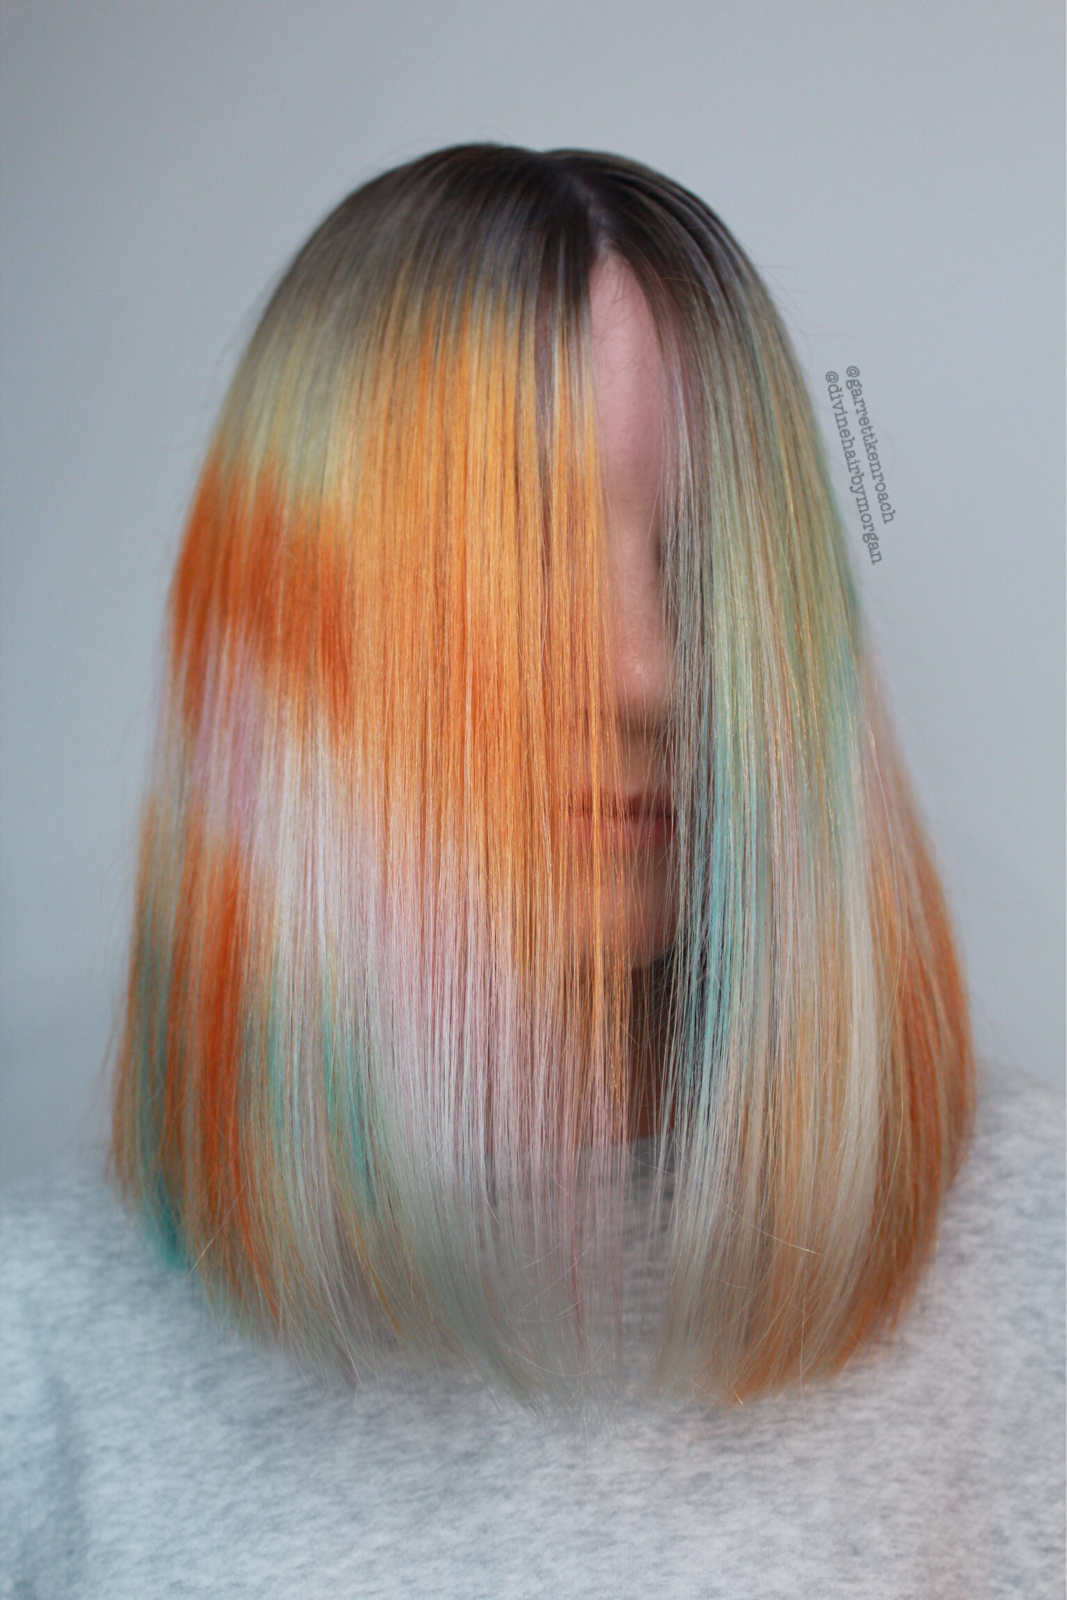 CLENDITIONER-COPPER-ROSEGOLD-EMERALD+TEAL-GARRETTKENROACH-DIVINEHAIRBYMORGAN-5